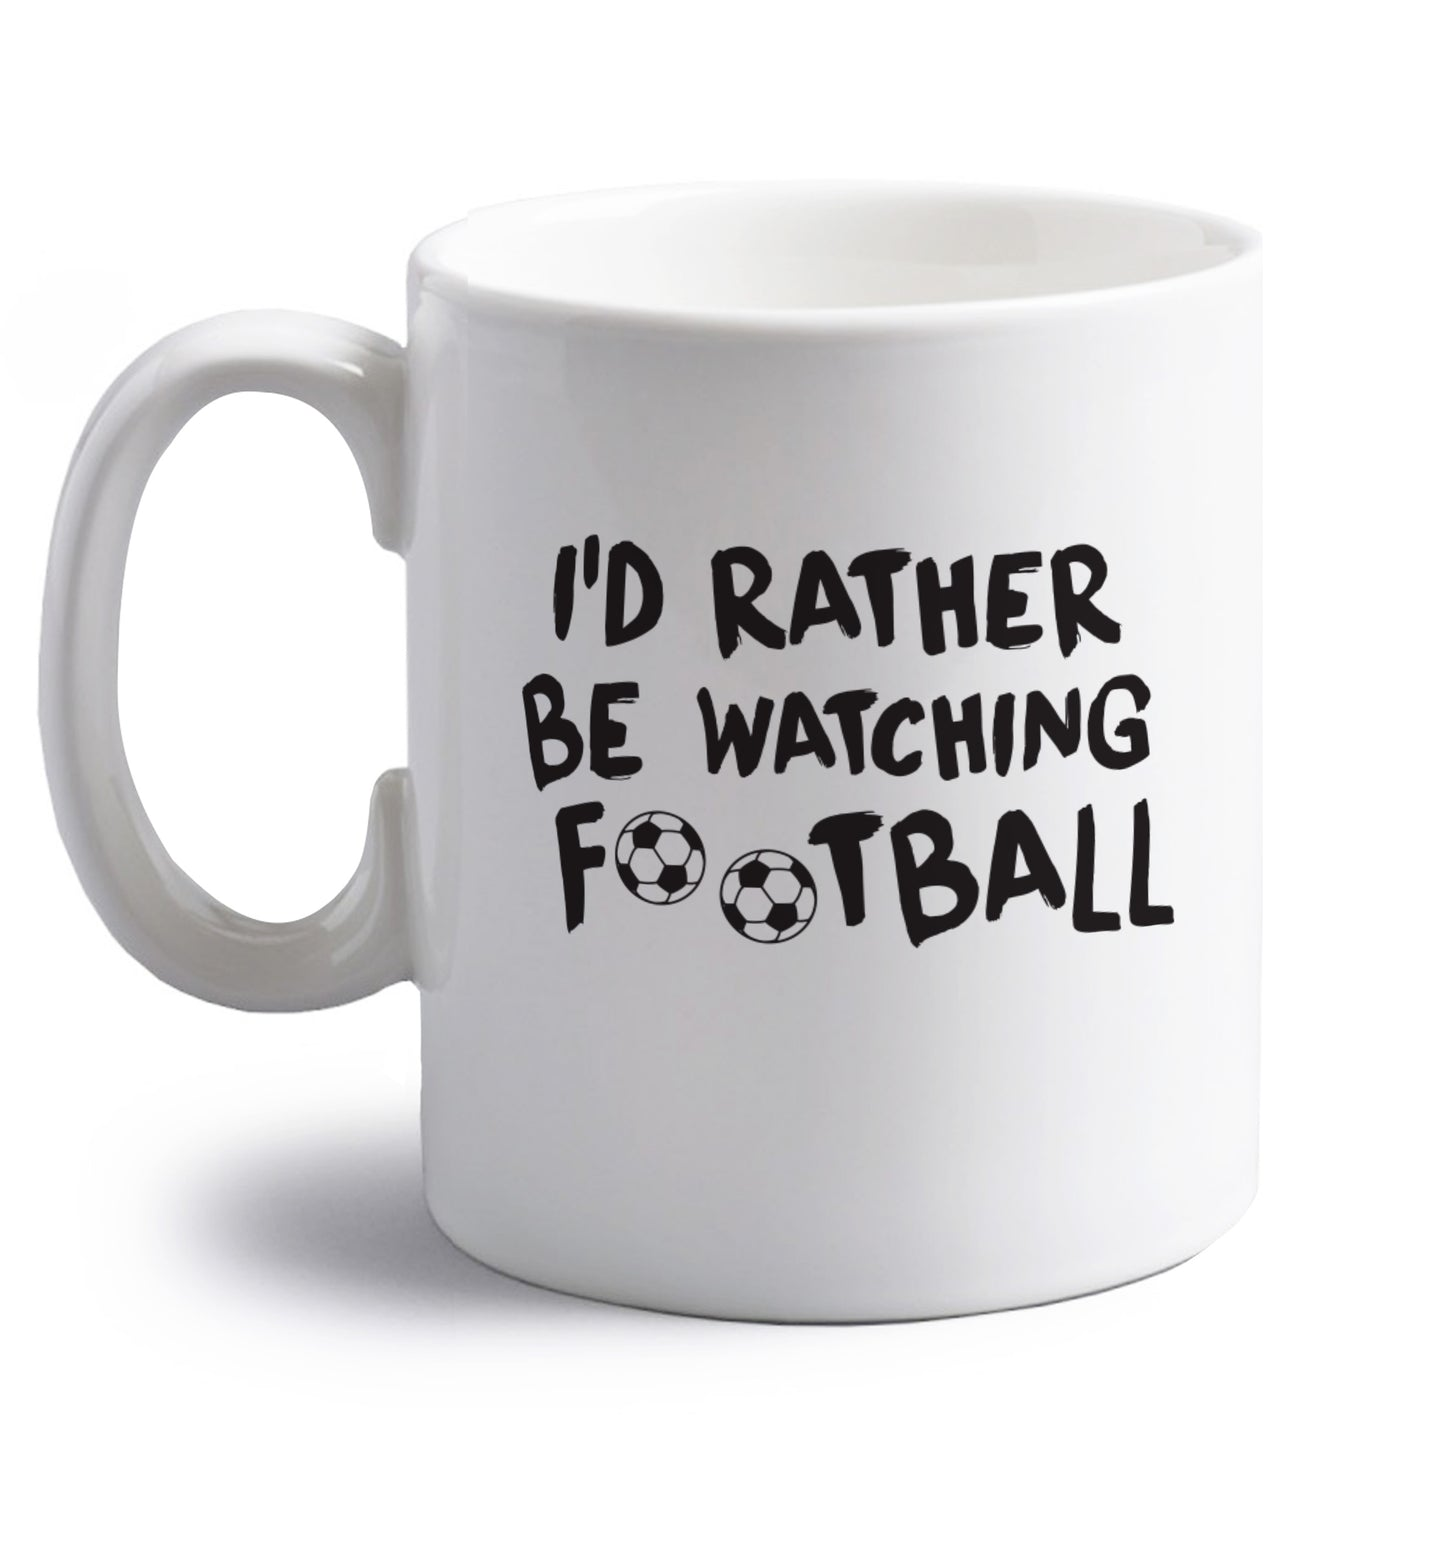 I'd rather be watching football right handed white ceramic mug